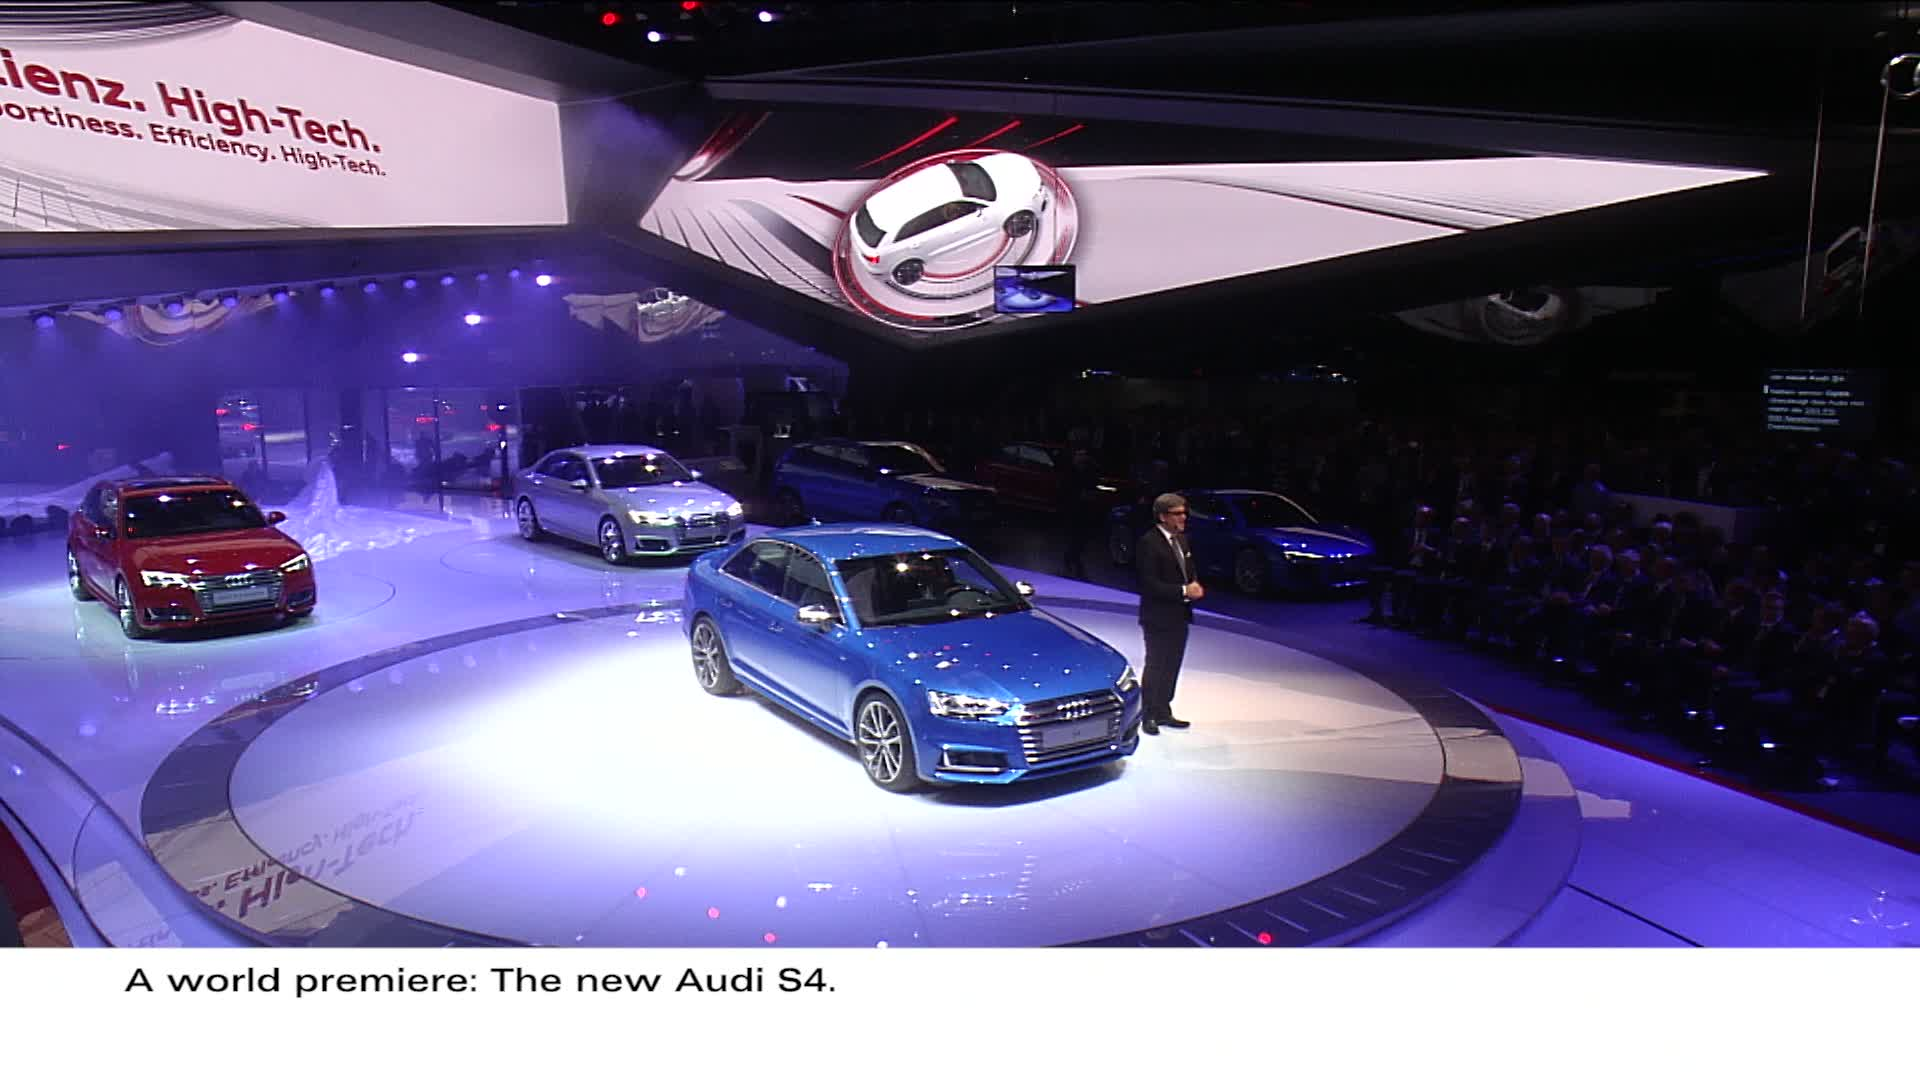 Audi press conference at the IAA 2015 - Highlights